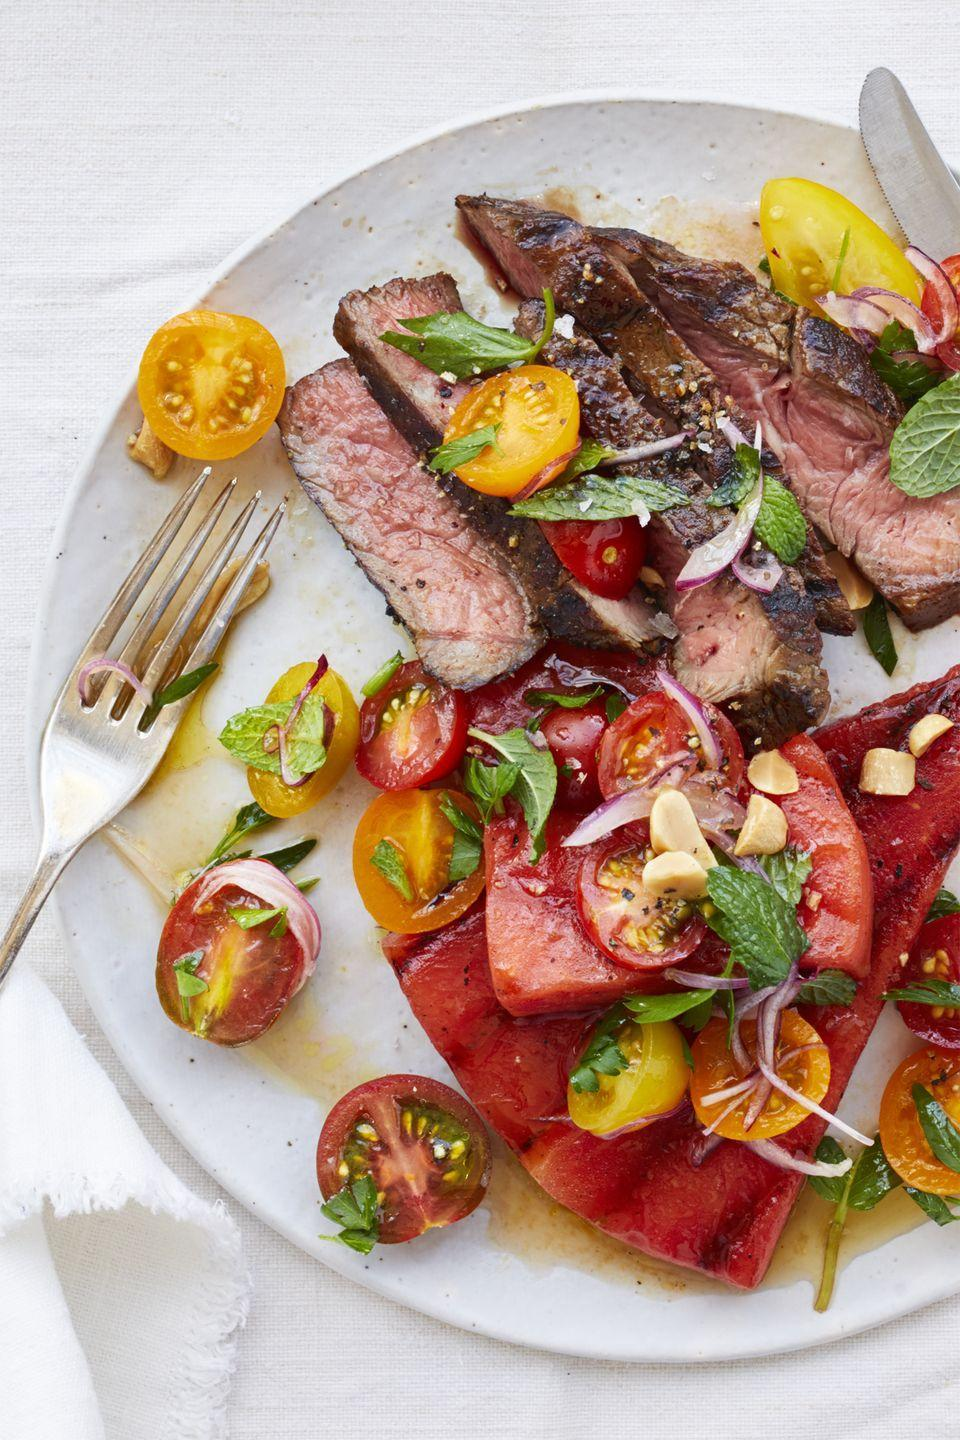 "<p>Bet you didn't think steak would make it on this list, did you? According to the <a href=""https://www.heart.org/en/healthy-living/healthy-eating/eat-smart/nutrition-basics/meat-poultry-and-fish-picking-healthy-proteins"" rel=""nofollow noopener"" target=""_blank"" data-ylk=""slk:American Heart Association"" class=""link rapid-noclick-resp"">American Heart Association</a>, you can have a moderate amount of red meat, as long as it's not everyday.</p><p><a href=""https://www.womansday.com/food-recipes/food-drinks/recipes/a59400/grilled-watermelon-salad-steak-tomatoes-recipe/"" rel=""nofollow noopener"" target=""_blank"" data-ylk=""slk:Get the Grilled Watermelon Salad with Steak and Tomatoes recipe."" class=""link rapid-noclick-resp""><em><strong>Get the Grilled Watermelon Salad with Steak and Tomatoes recipe.</strong></em></a></p>"